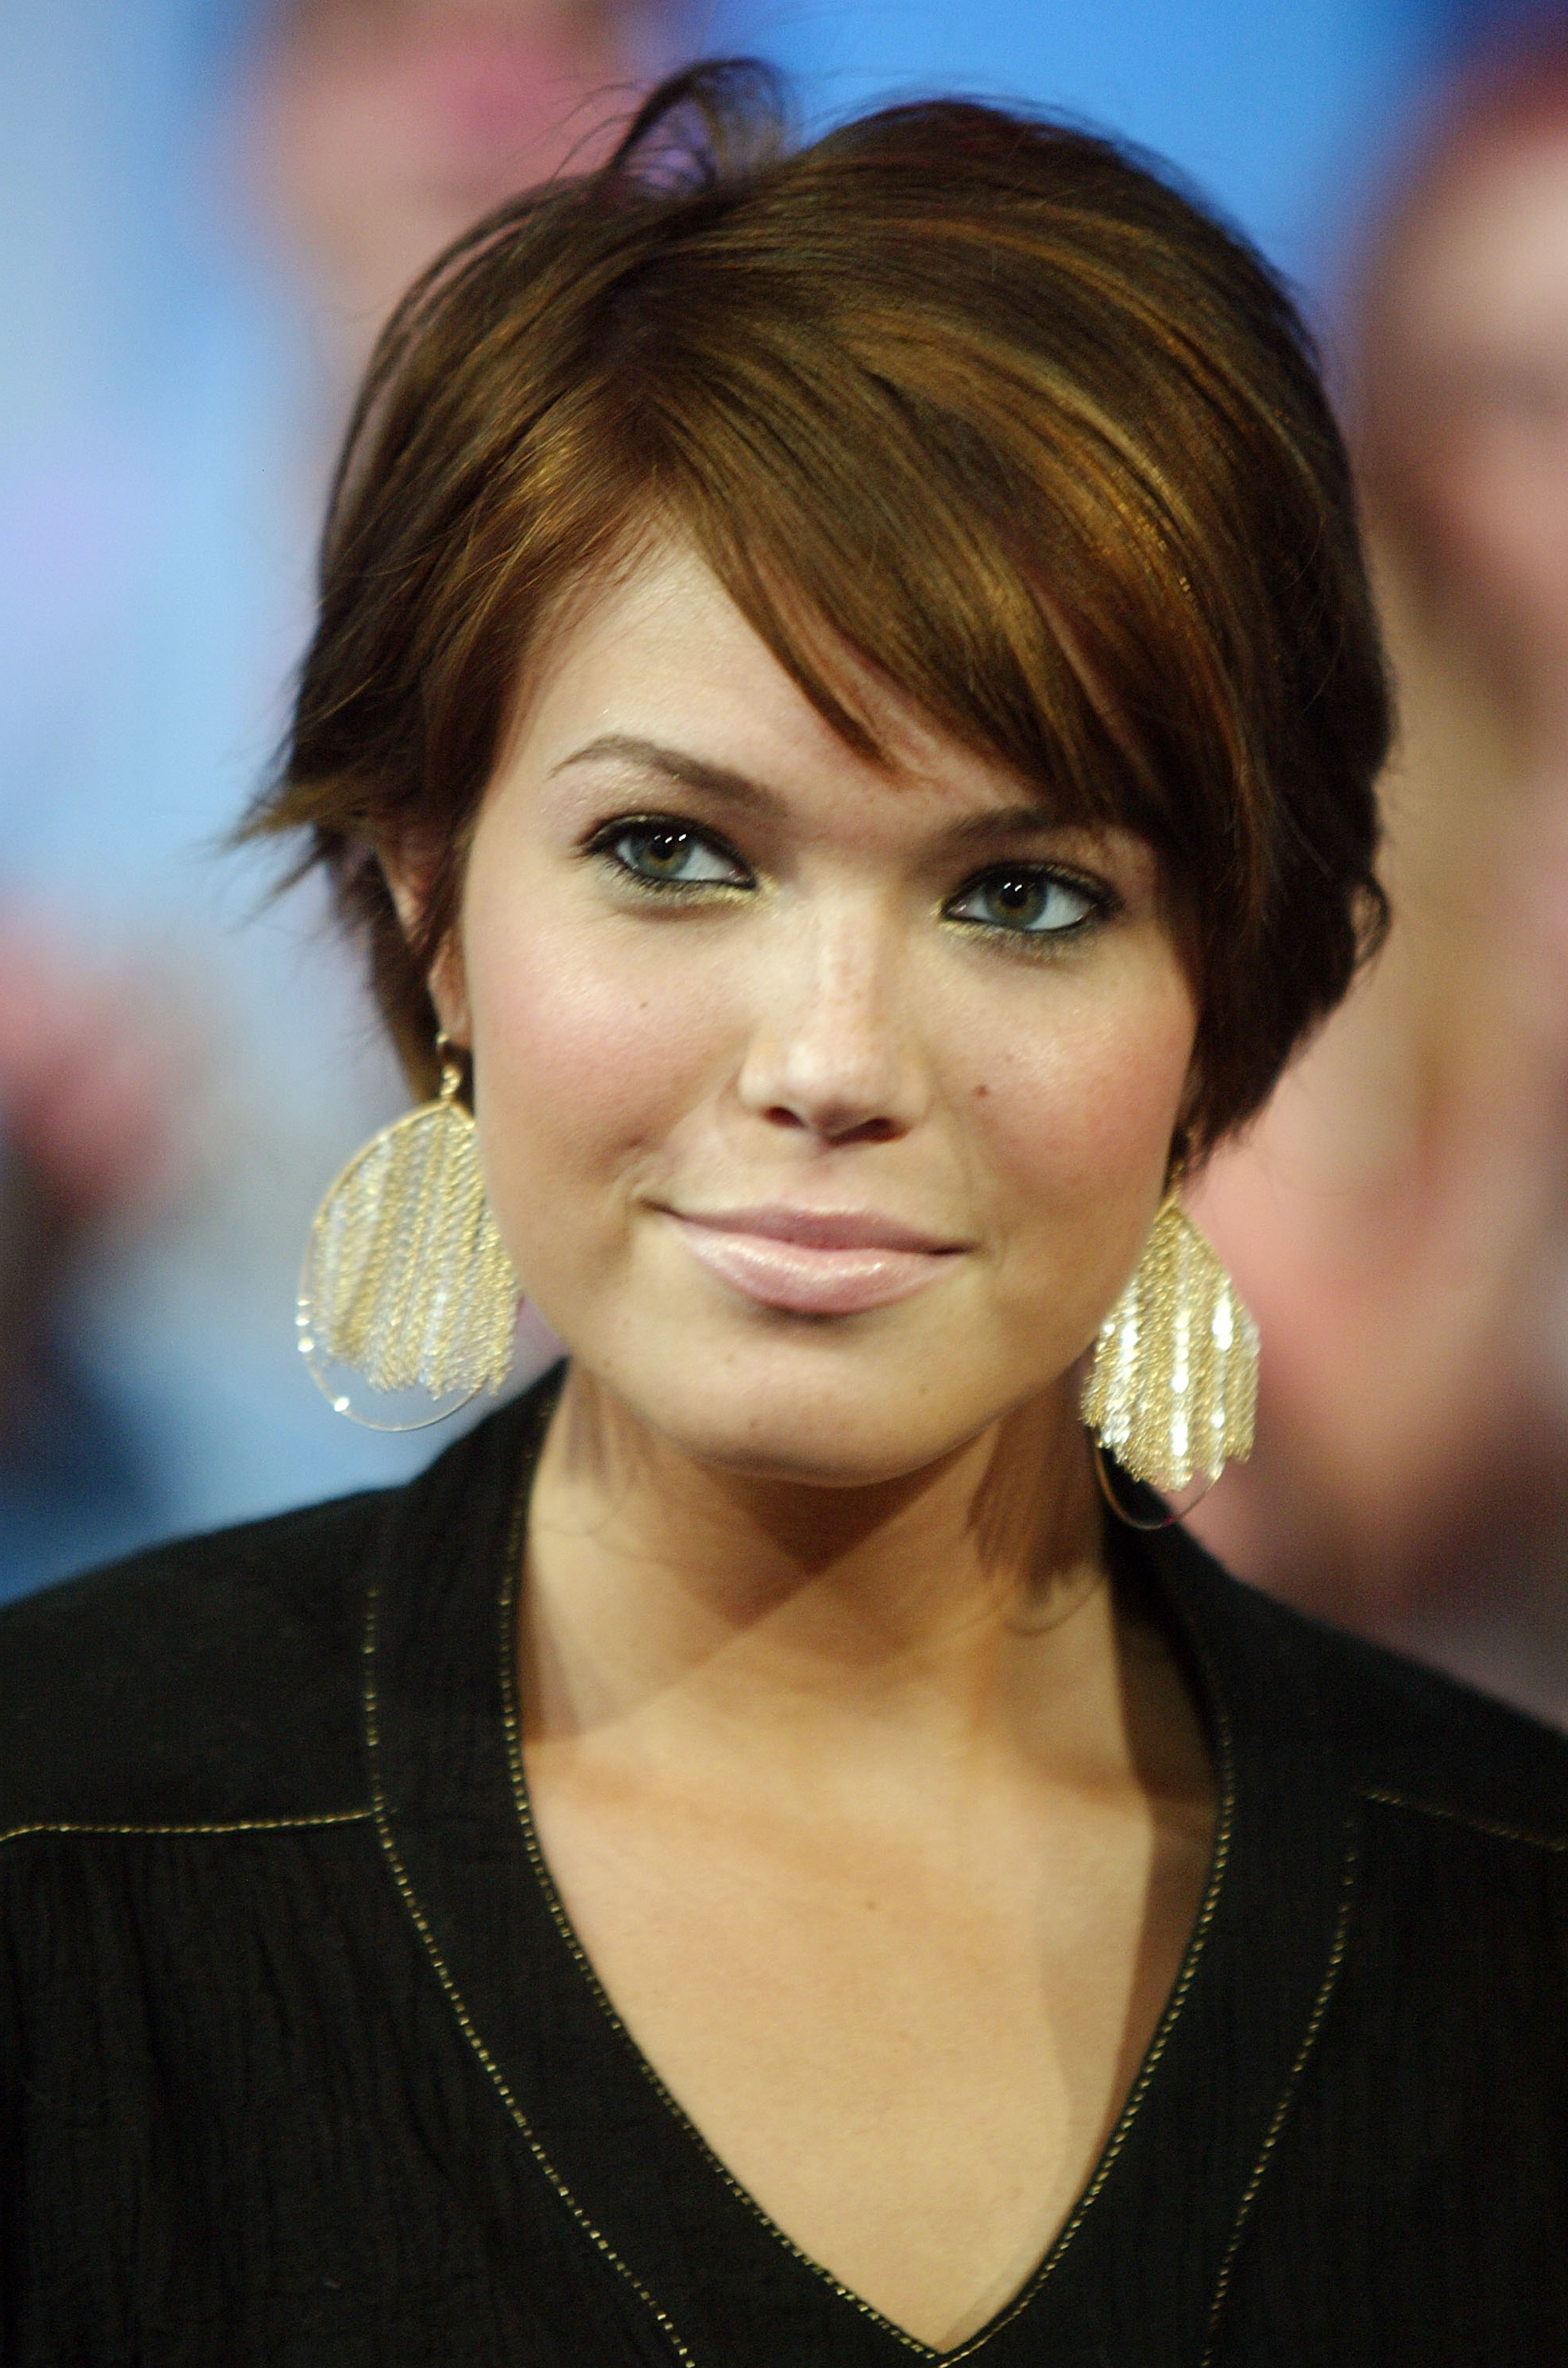 Short Haircuts For Round Faces Thin Hair – Hairstyle For Women & Man Inside Women Short Haircuts For Round Faces (View 16 of 25)